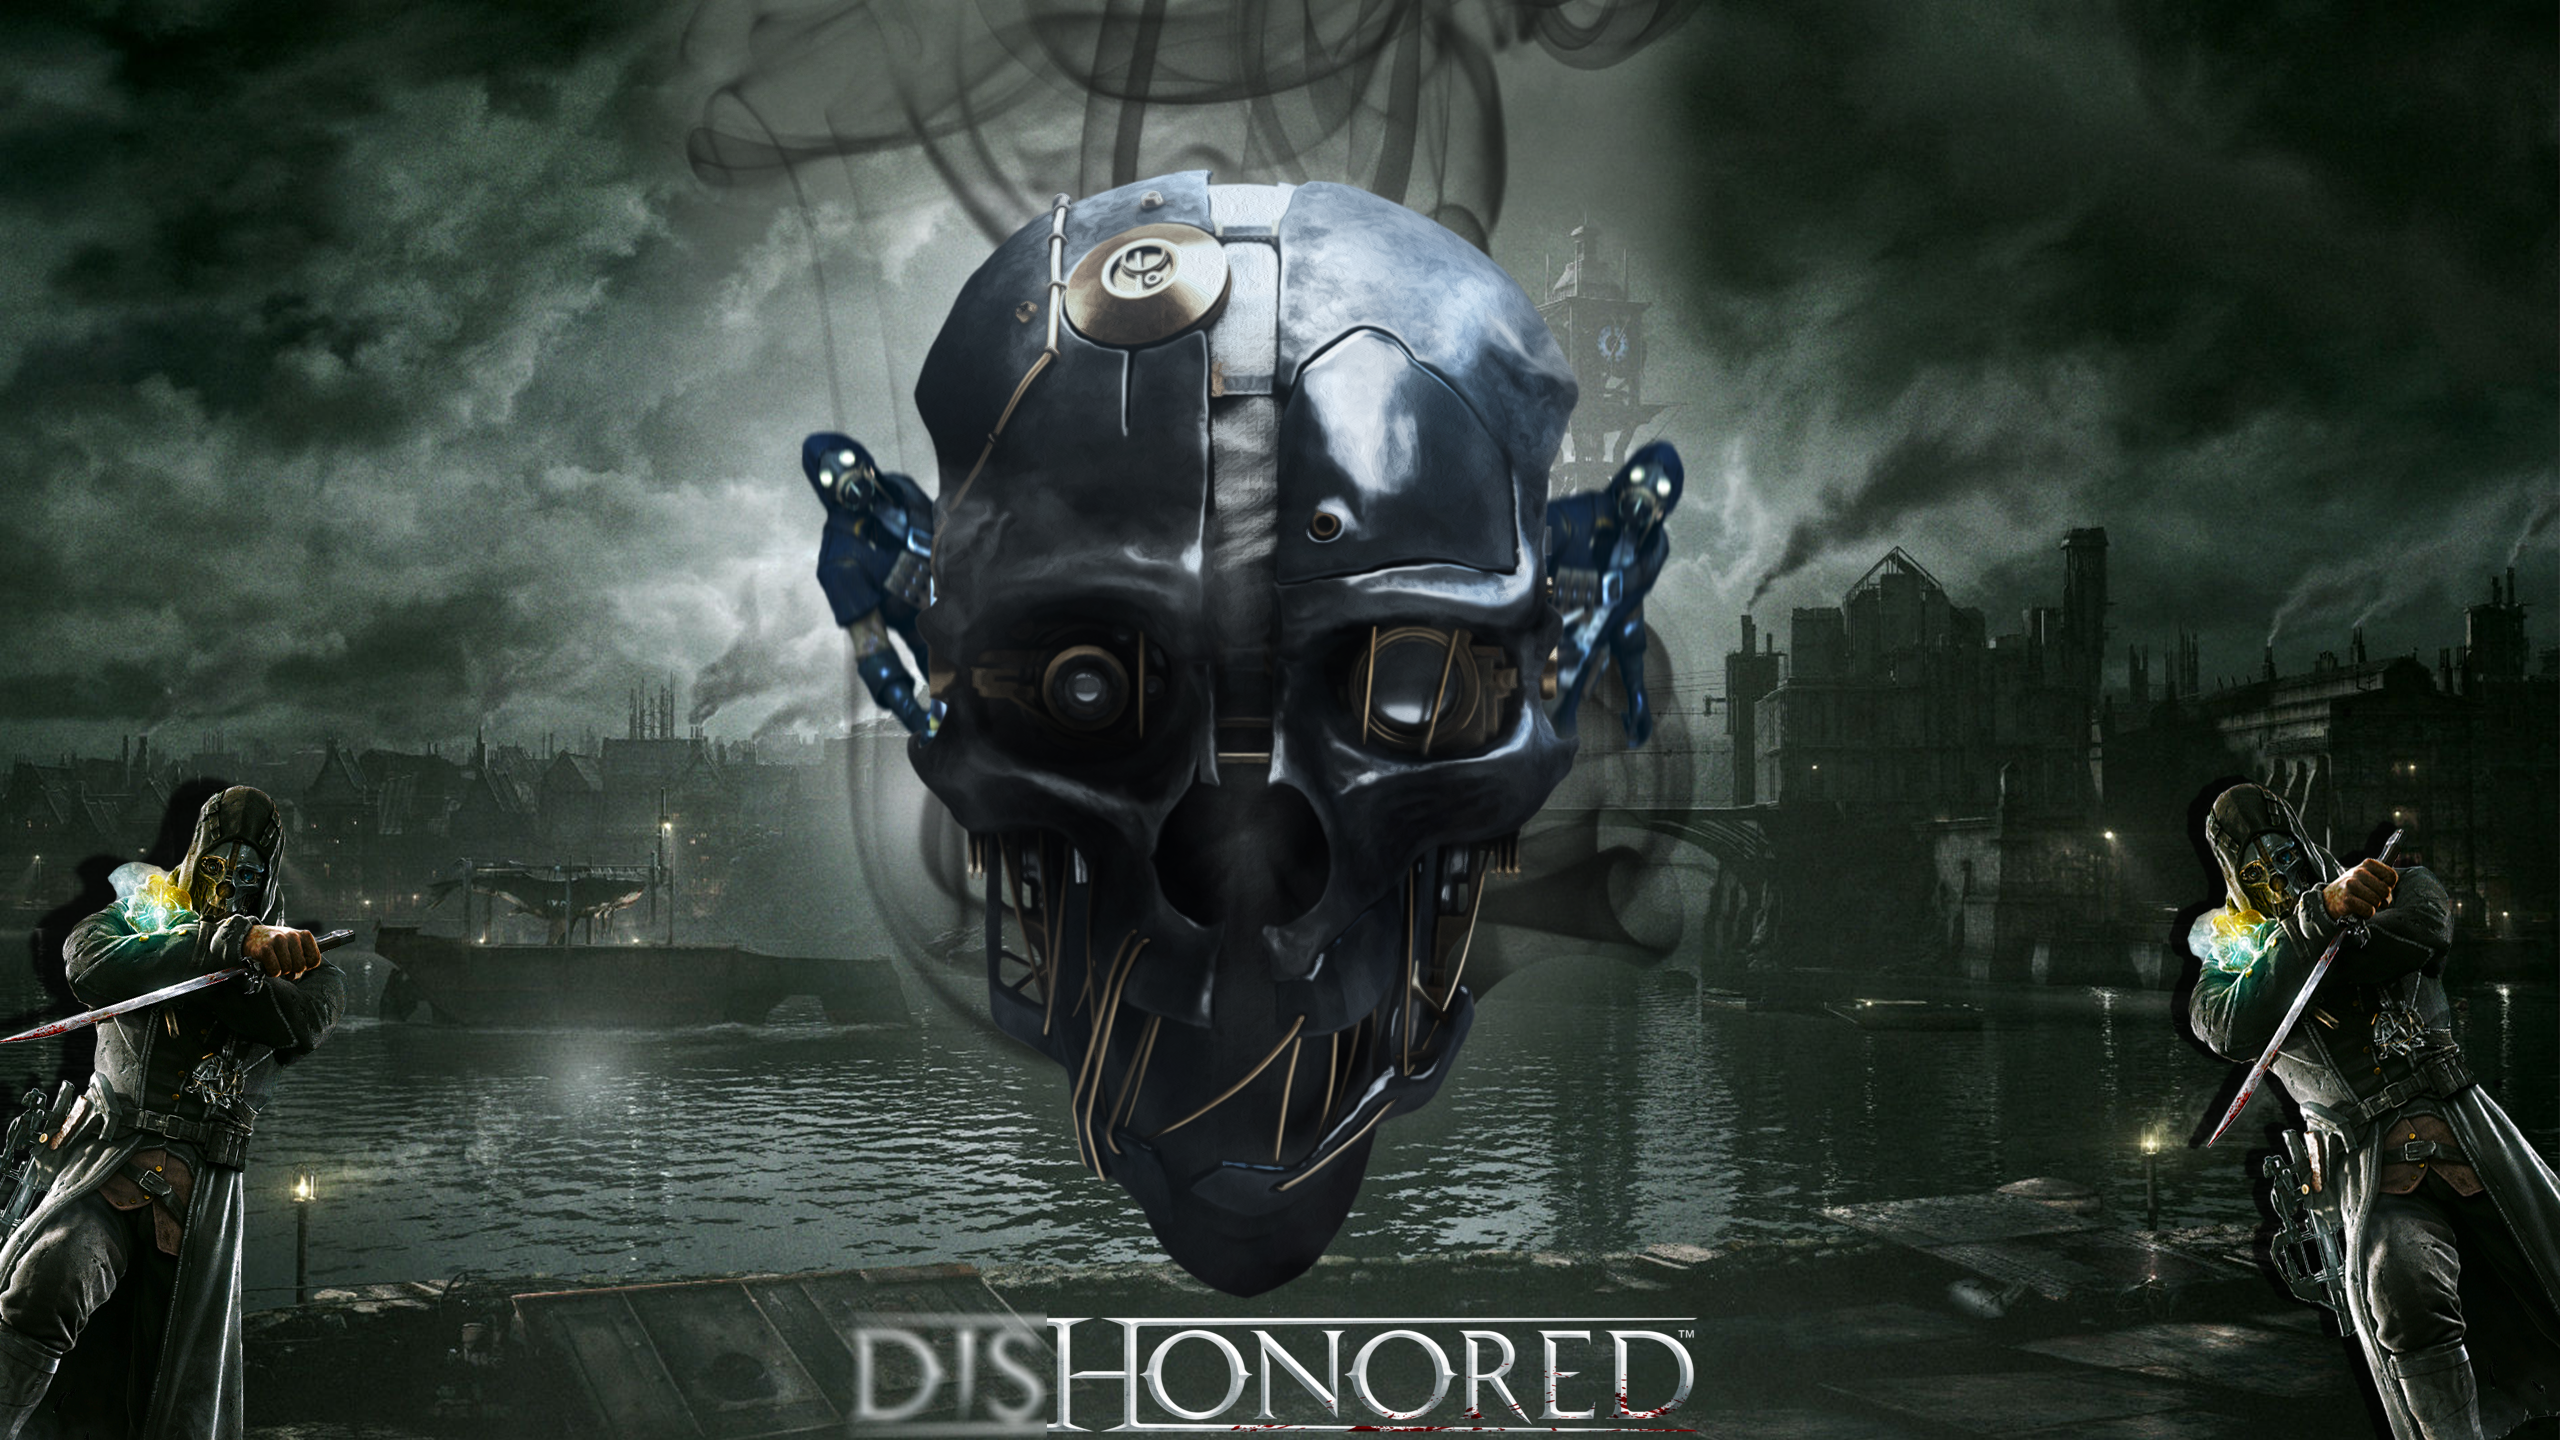 Dishonored Wallpaper 4k: Dishonored Background